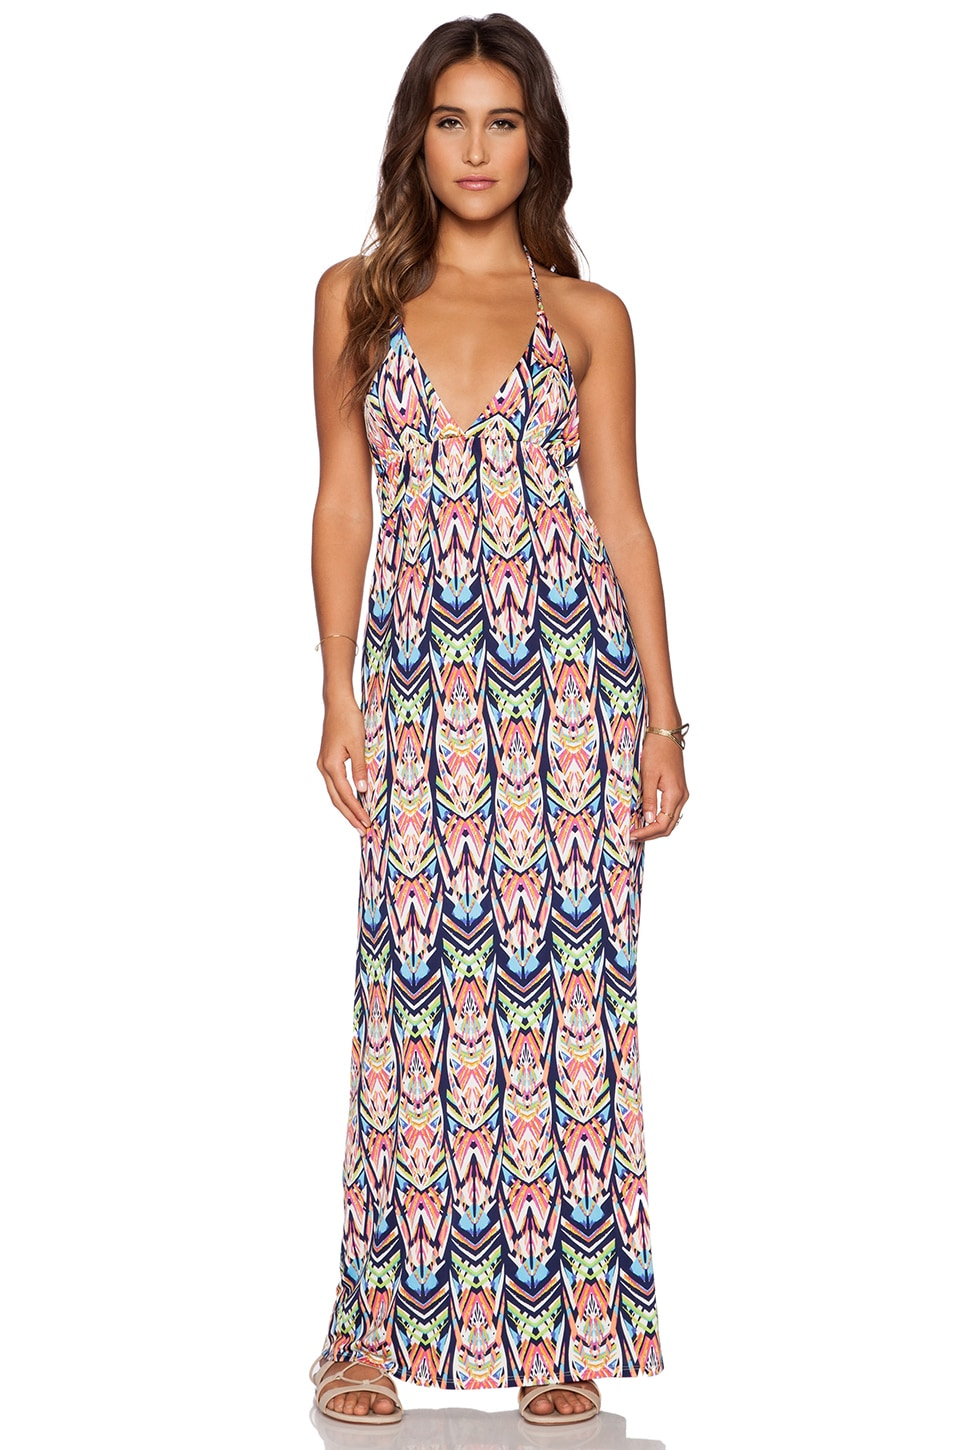 T-Bags LosAngeles Maxi Dress in St. Lucia